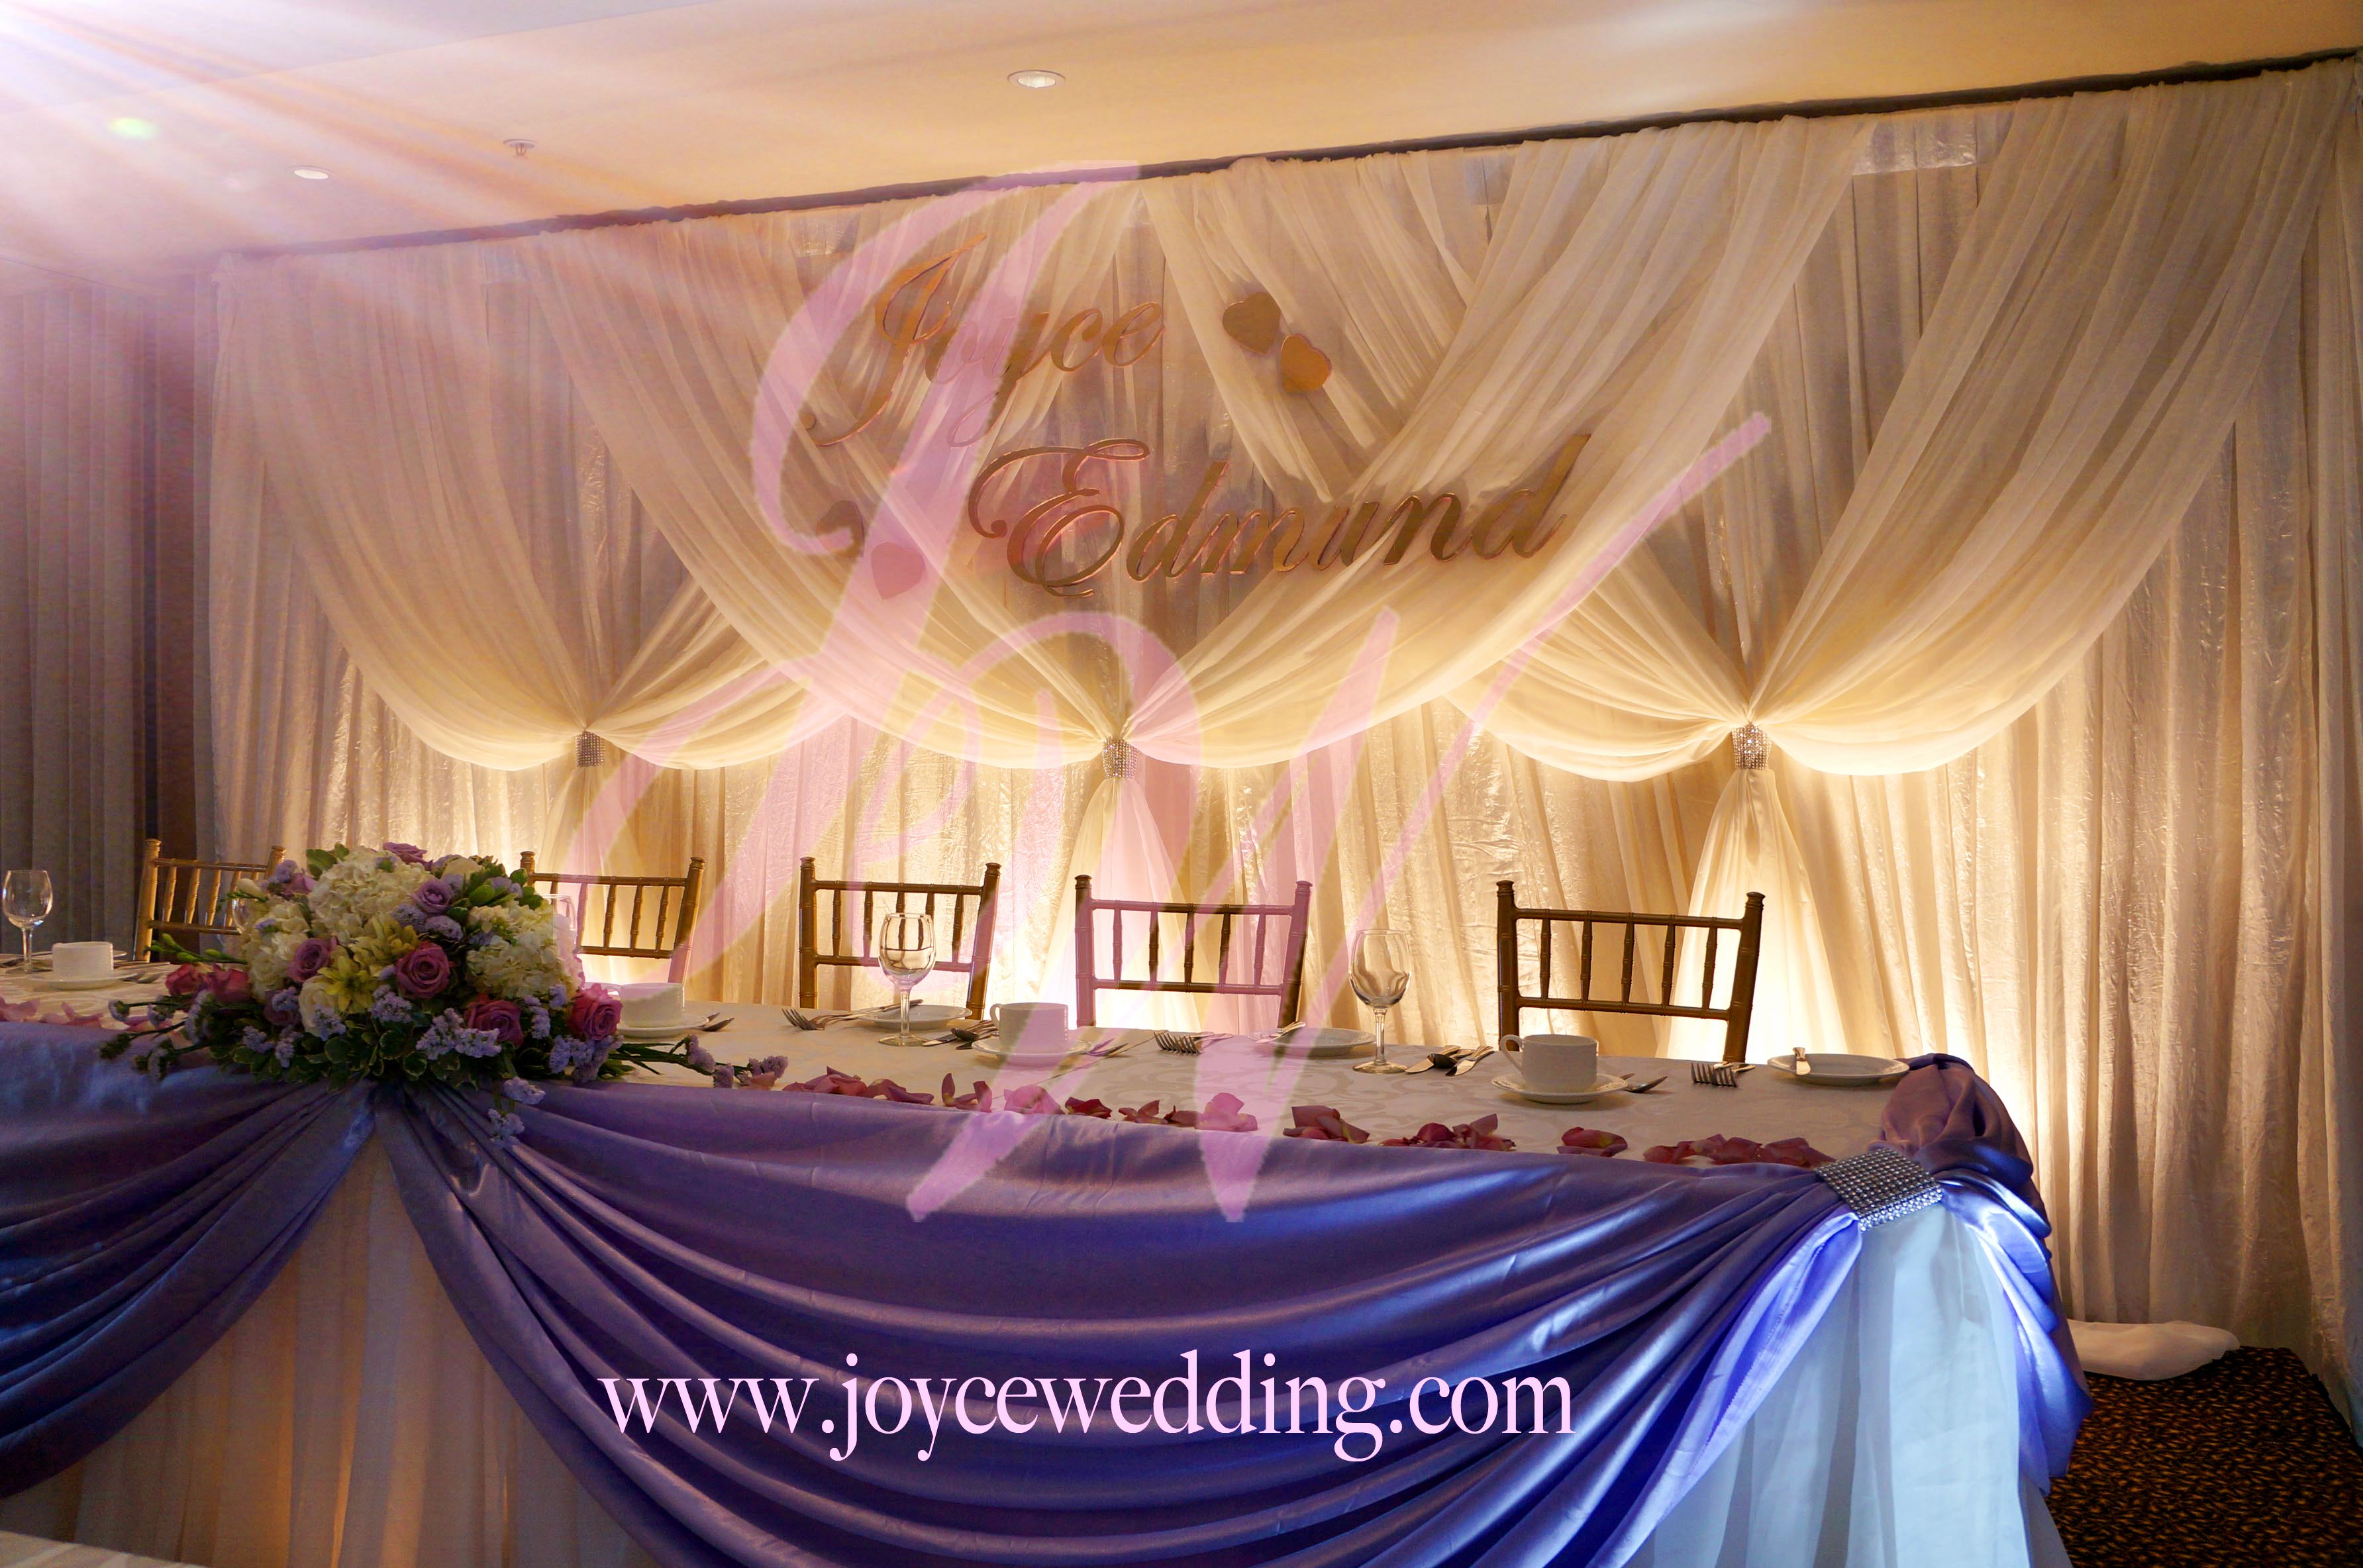 Uncategorized Wedding Reception Backdrop Decorations reception backdrop ideas joyce wedding services service provides one stop